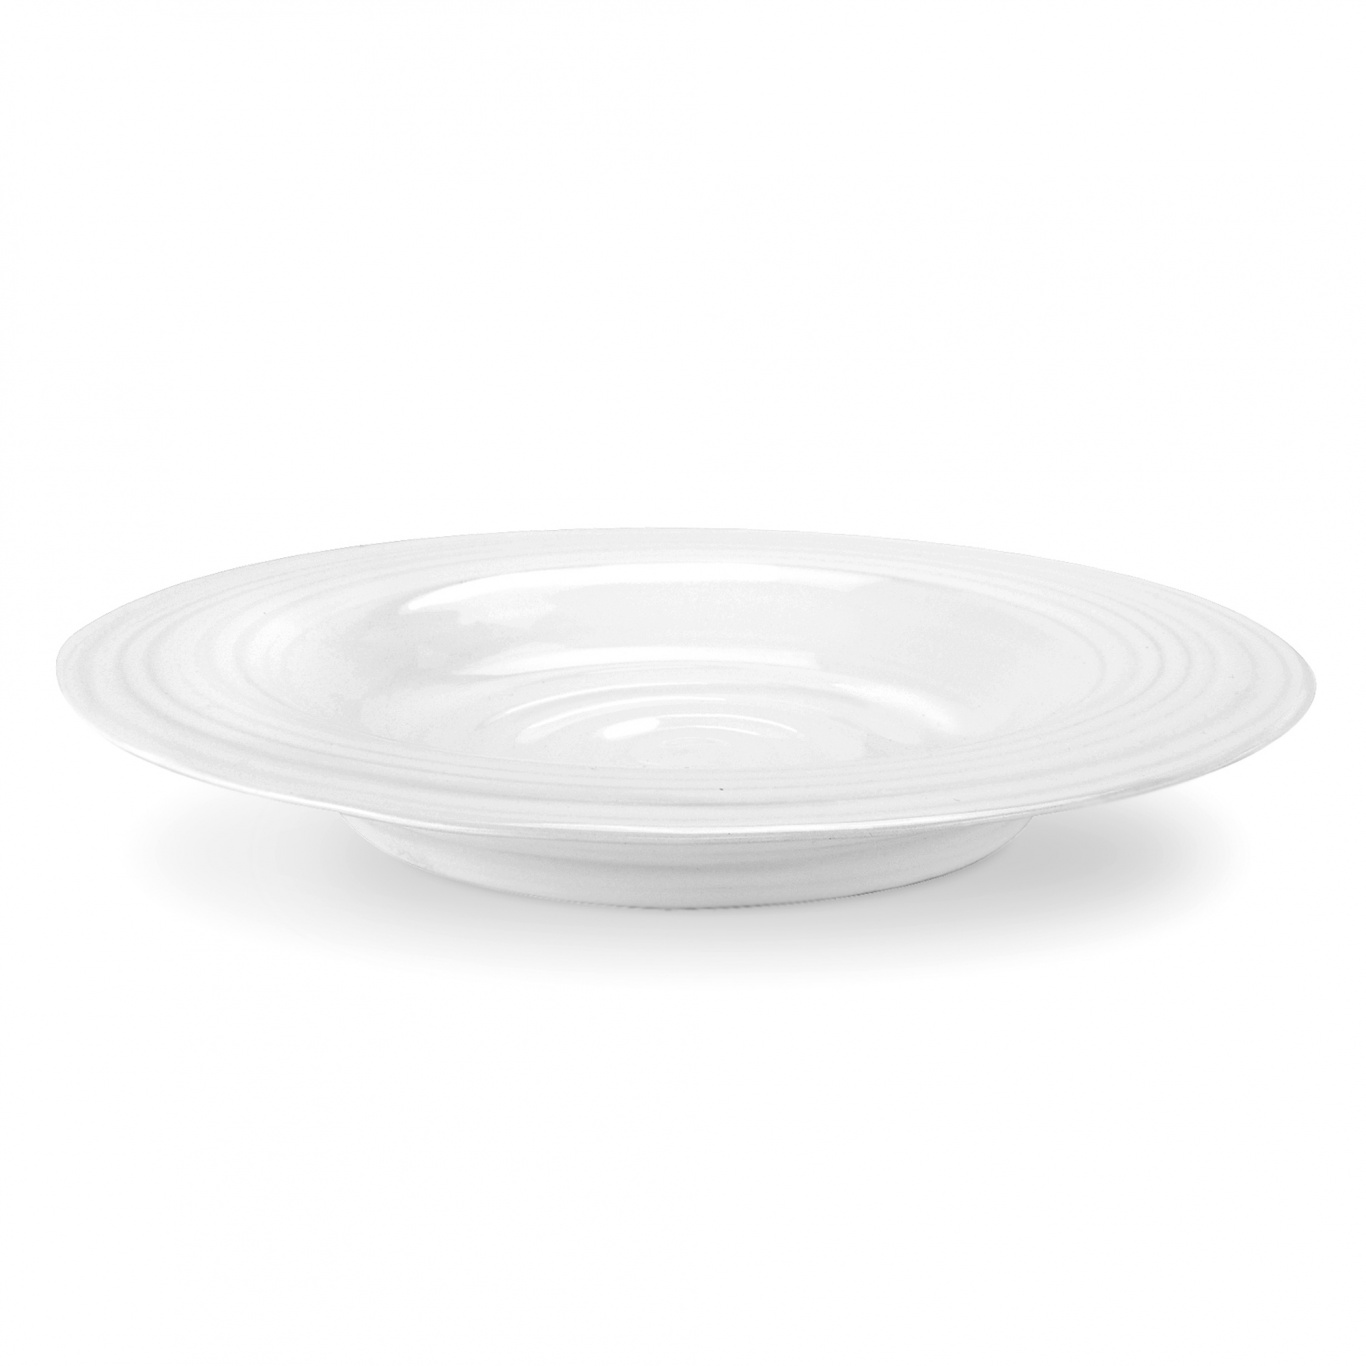 Image of Sophie Conran White Rimmed Soup Plate 25cm